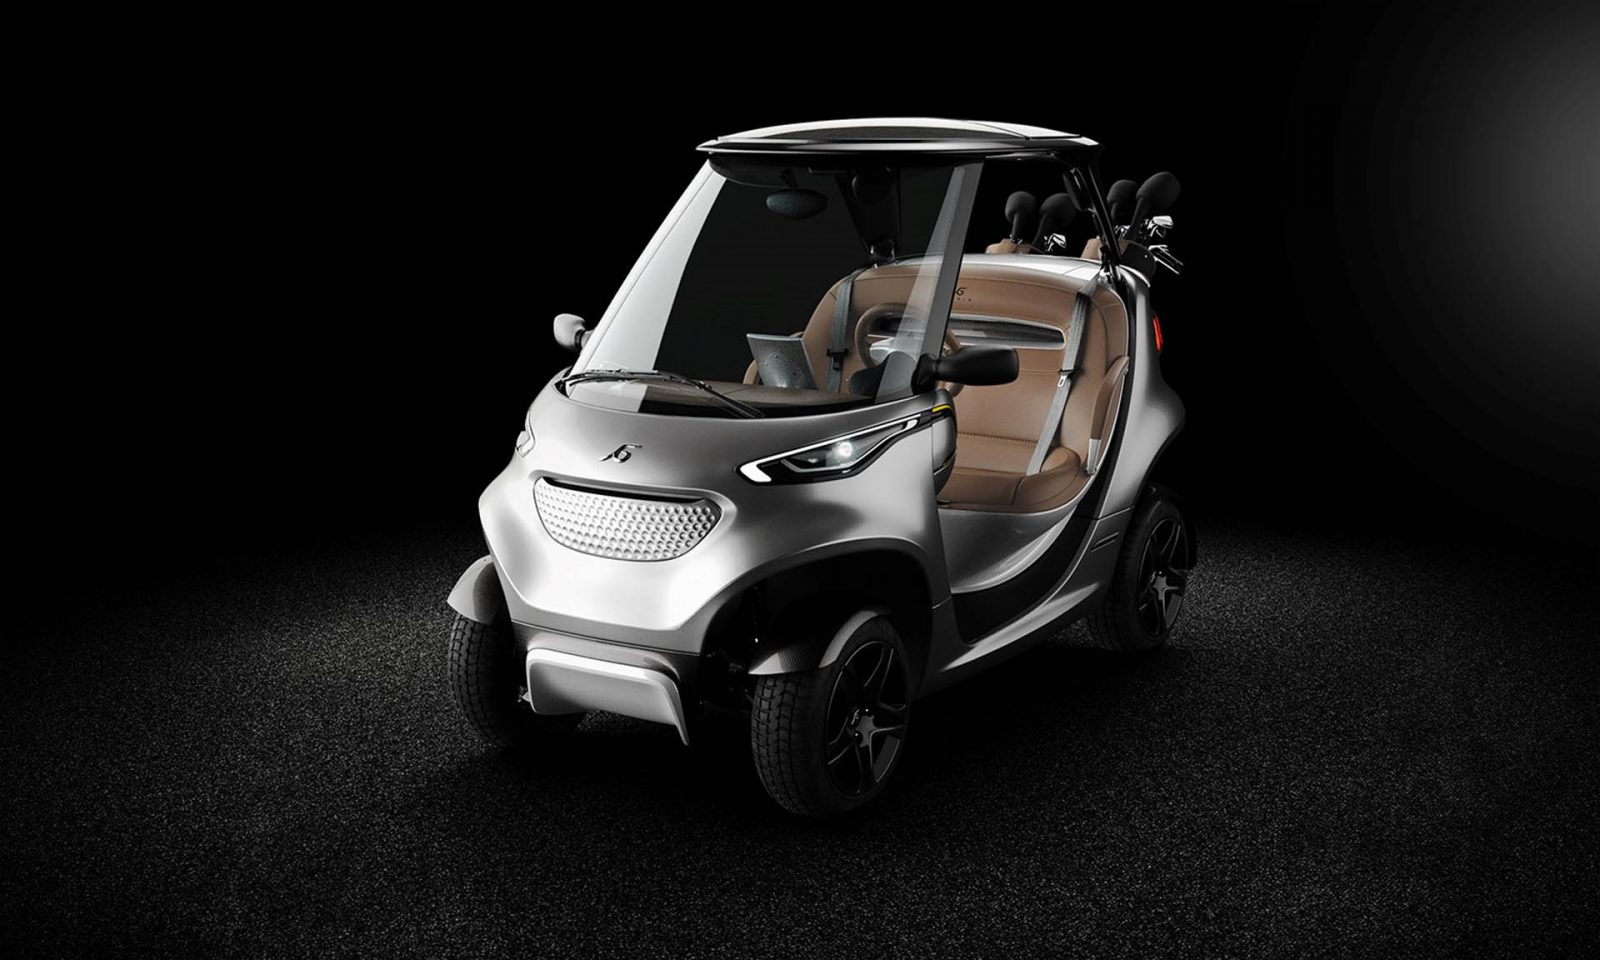 Garia_Golf_Car_Inspired_by_Mercedes-Benz_Style_front_grey_01-1